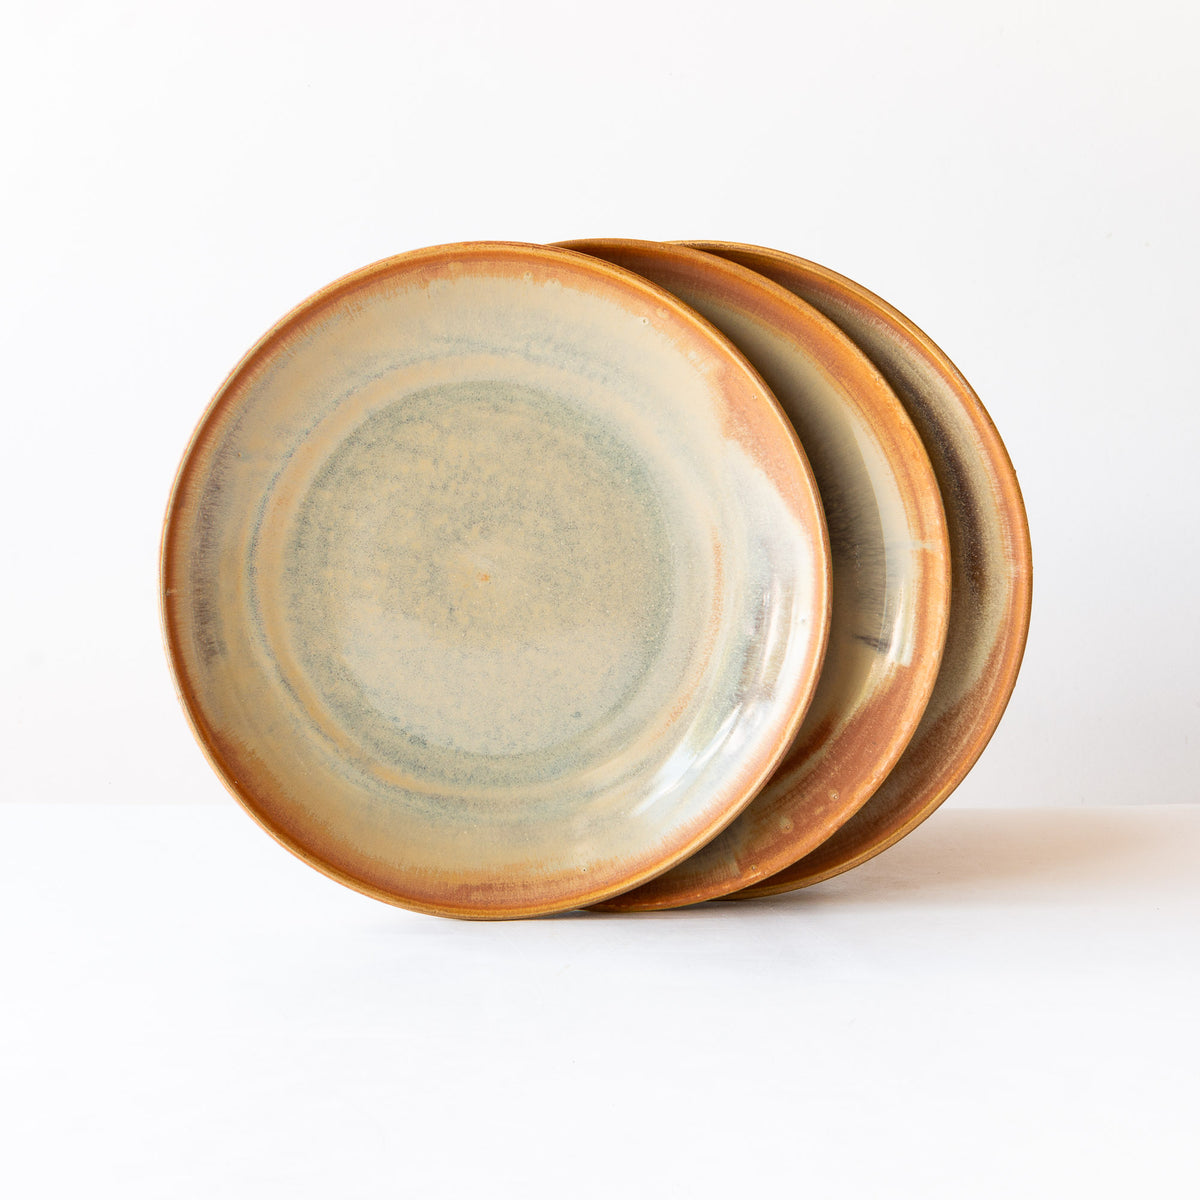 Three Handmade Stoneware Dinner Plates - Barley Corn Colour - Sold by Chic & Basta